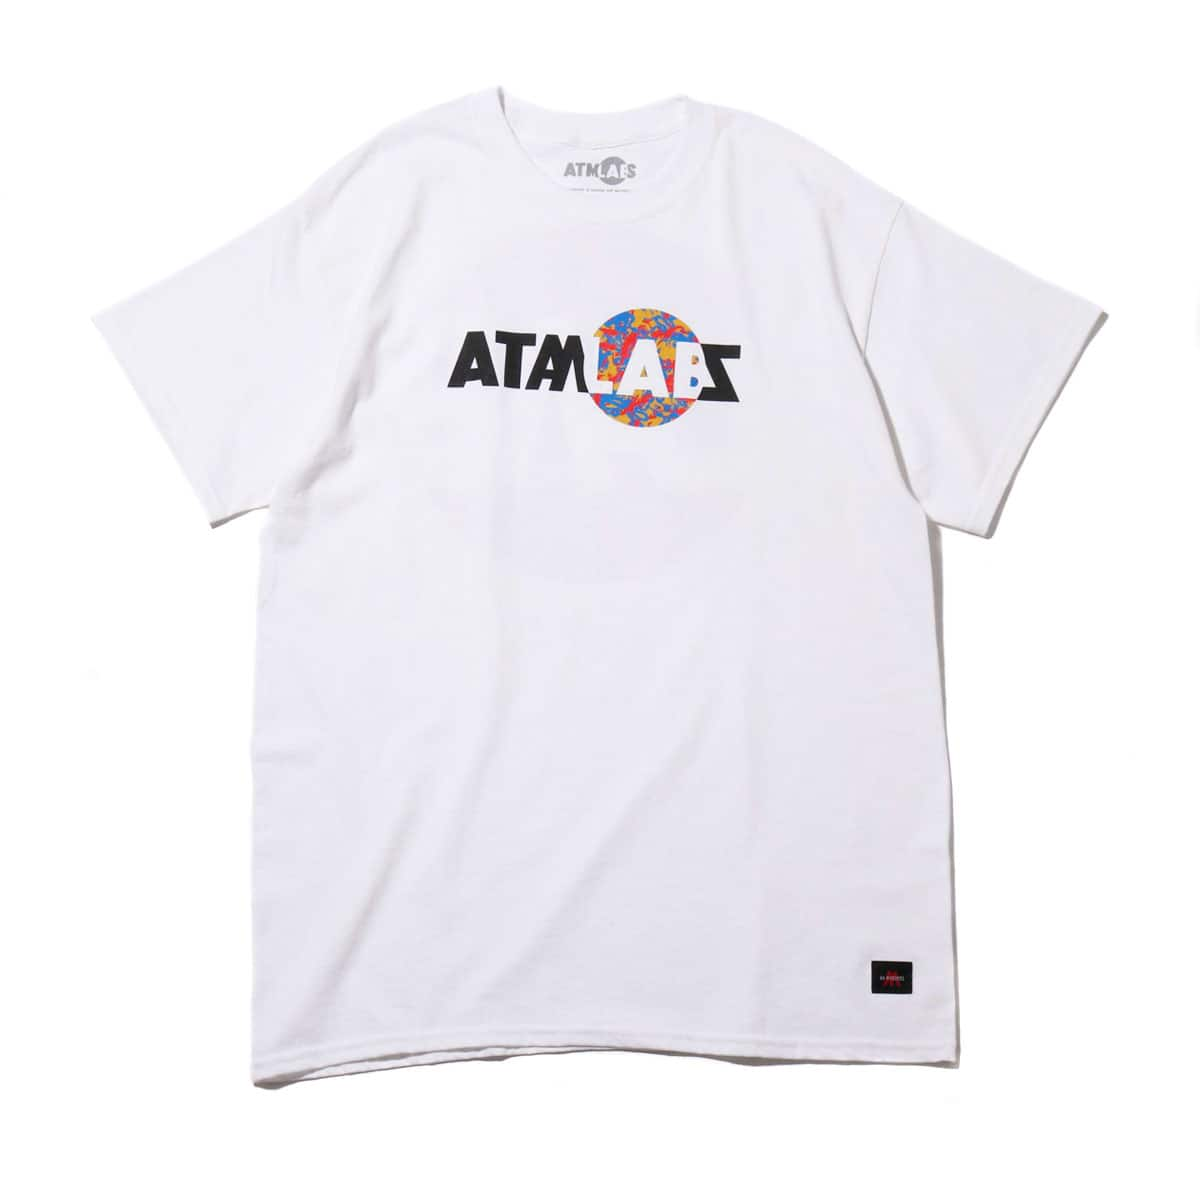 ATMOS LAB AH MURDERZ x ATMOS LAB TEE WHITE 19SU-S_photo_large